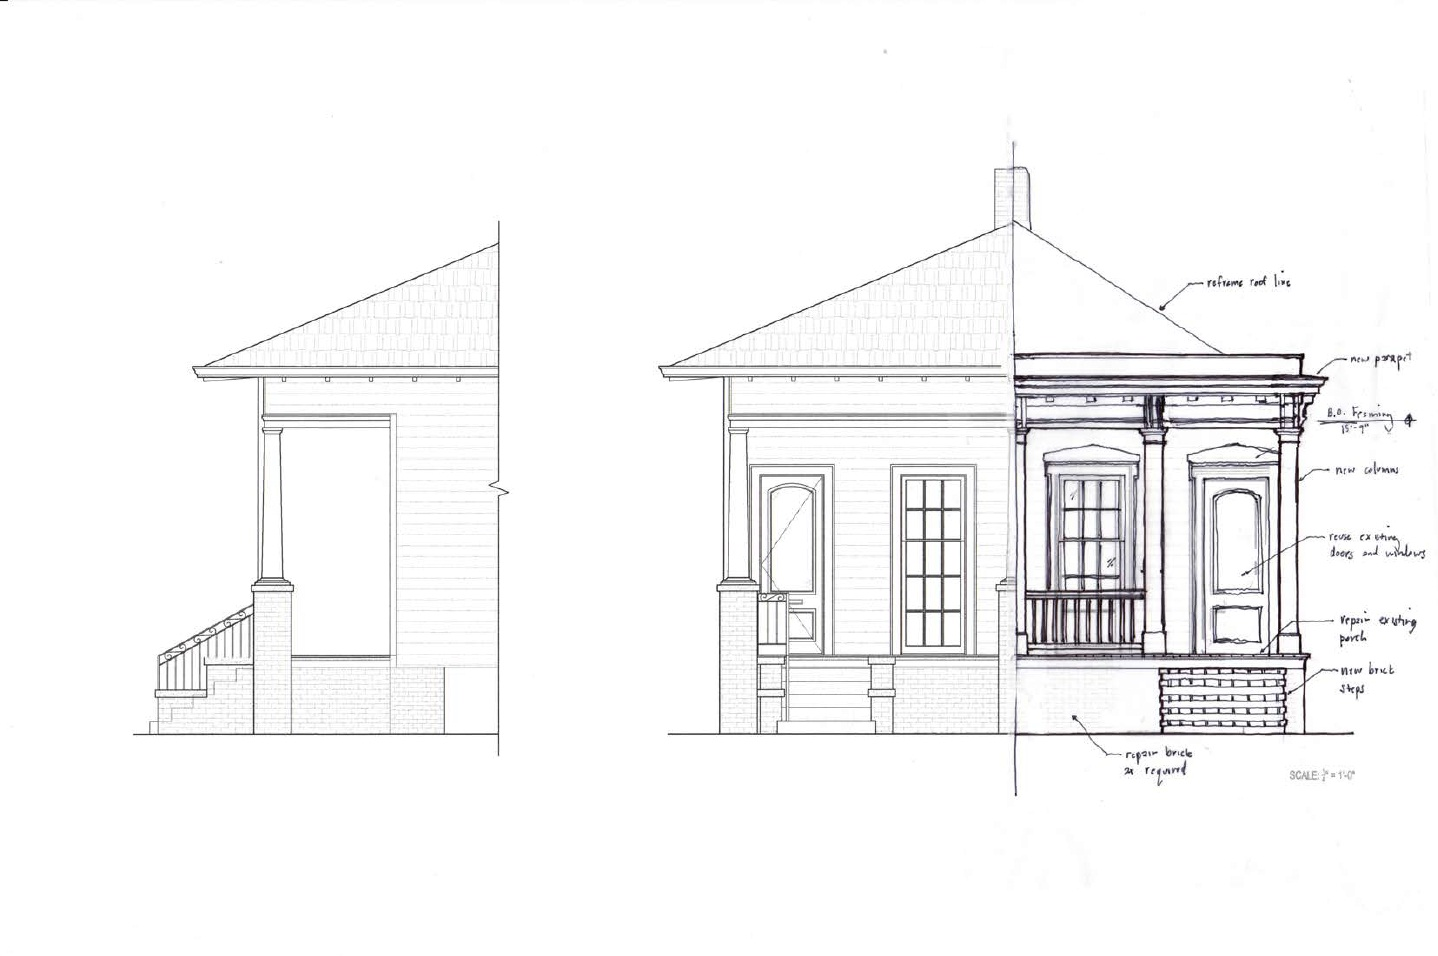 Proposed front elevation with parapet